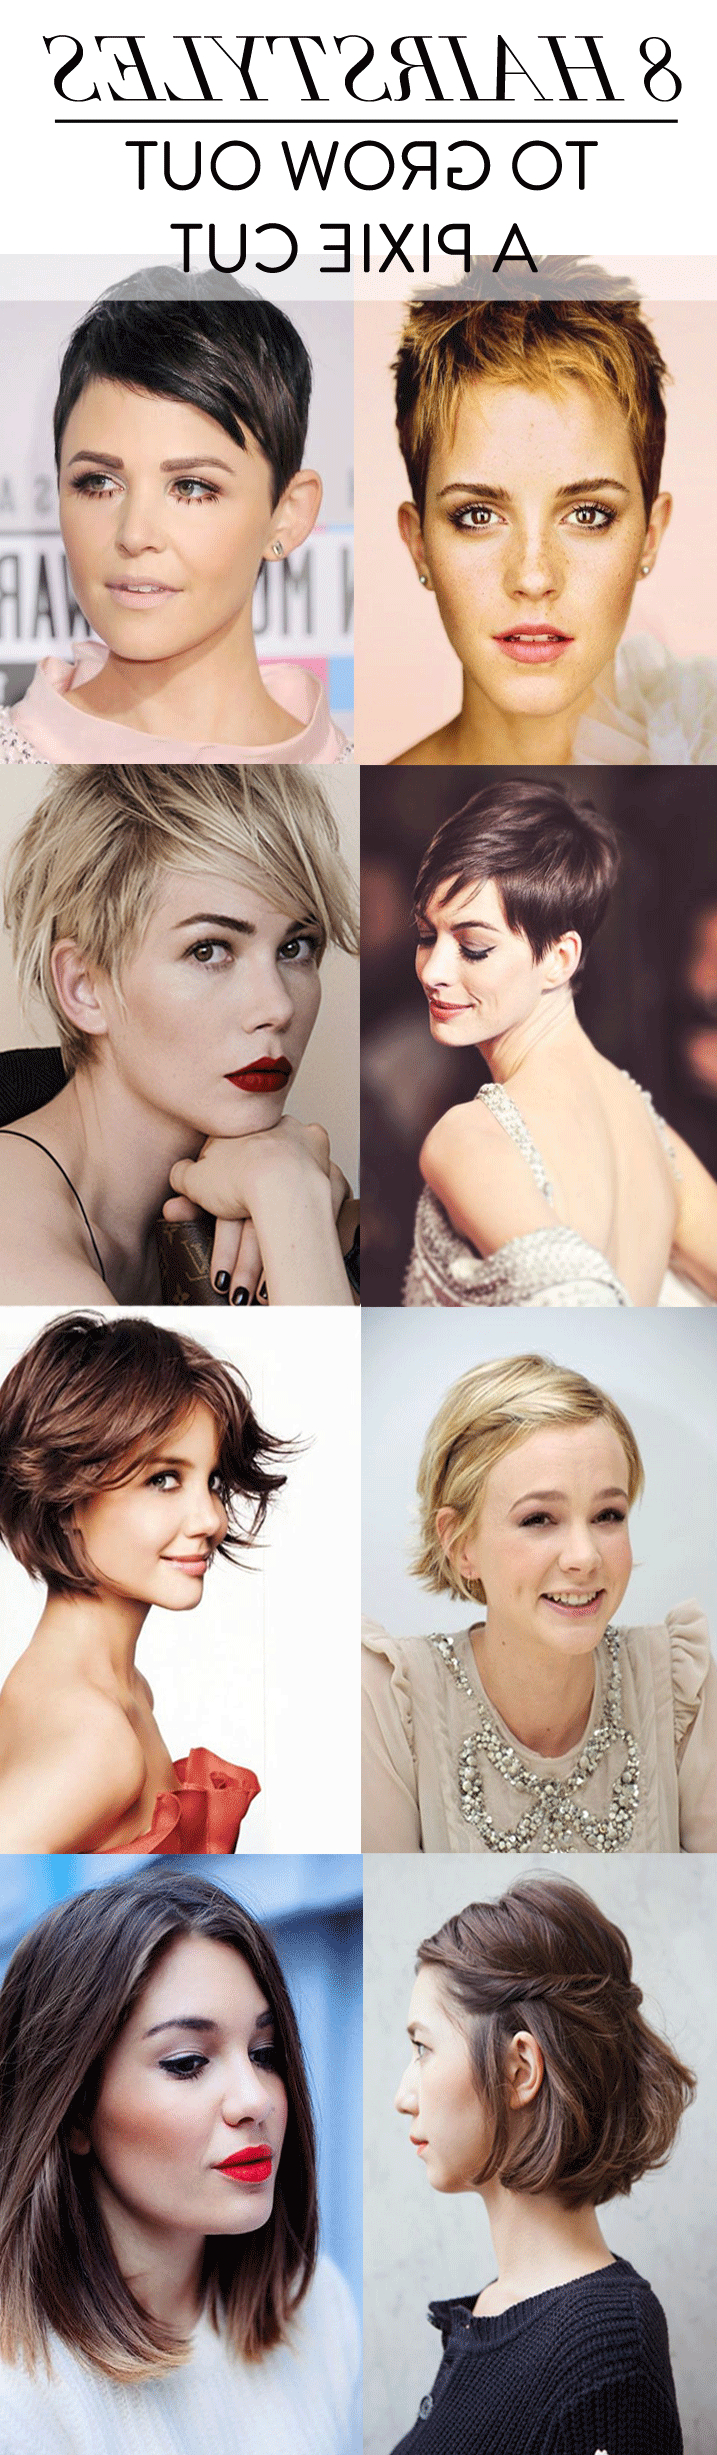 How To Grow Out A Pixie Cut | Charmingly Styled Within Short Hairstyles For Growing Out A Pixie Cut (View 5 of 25)